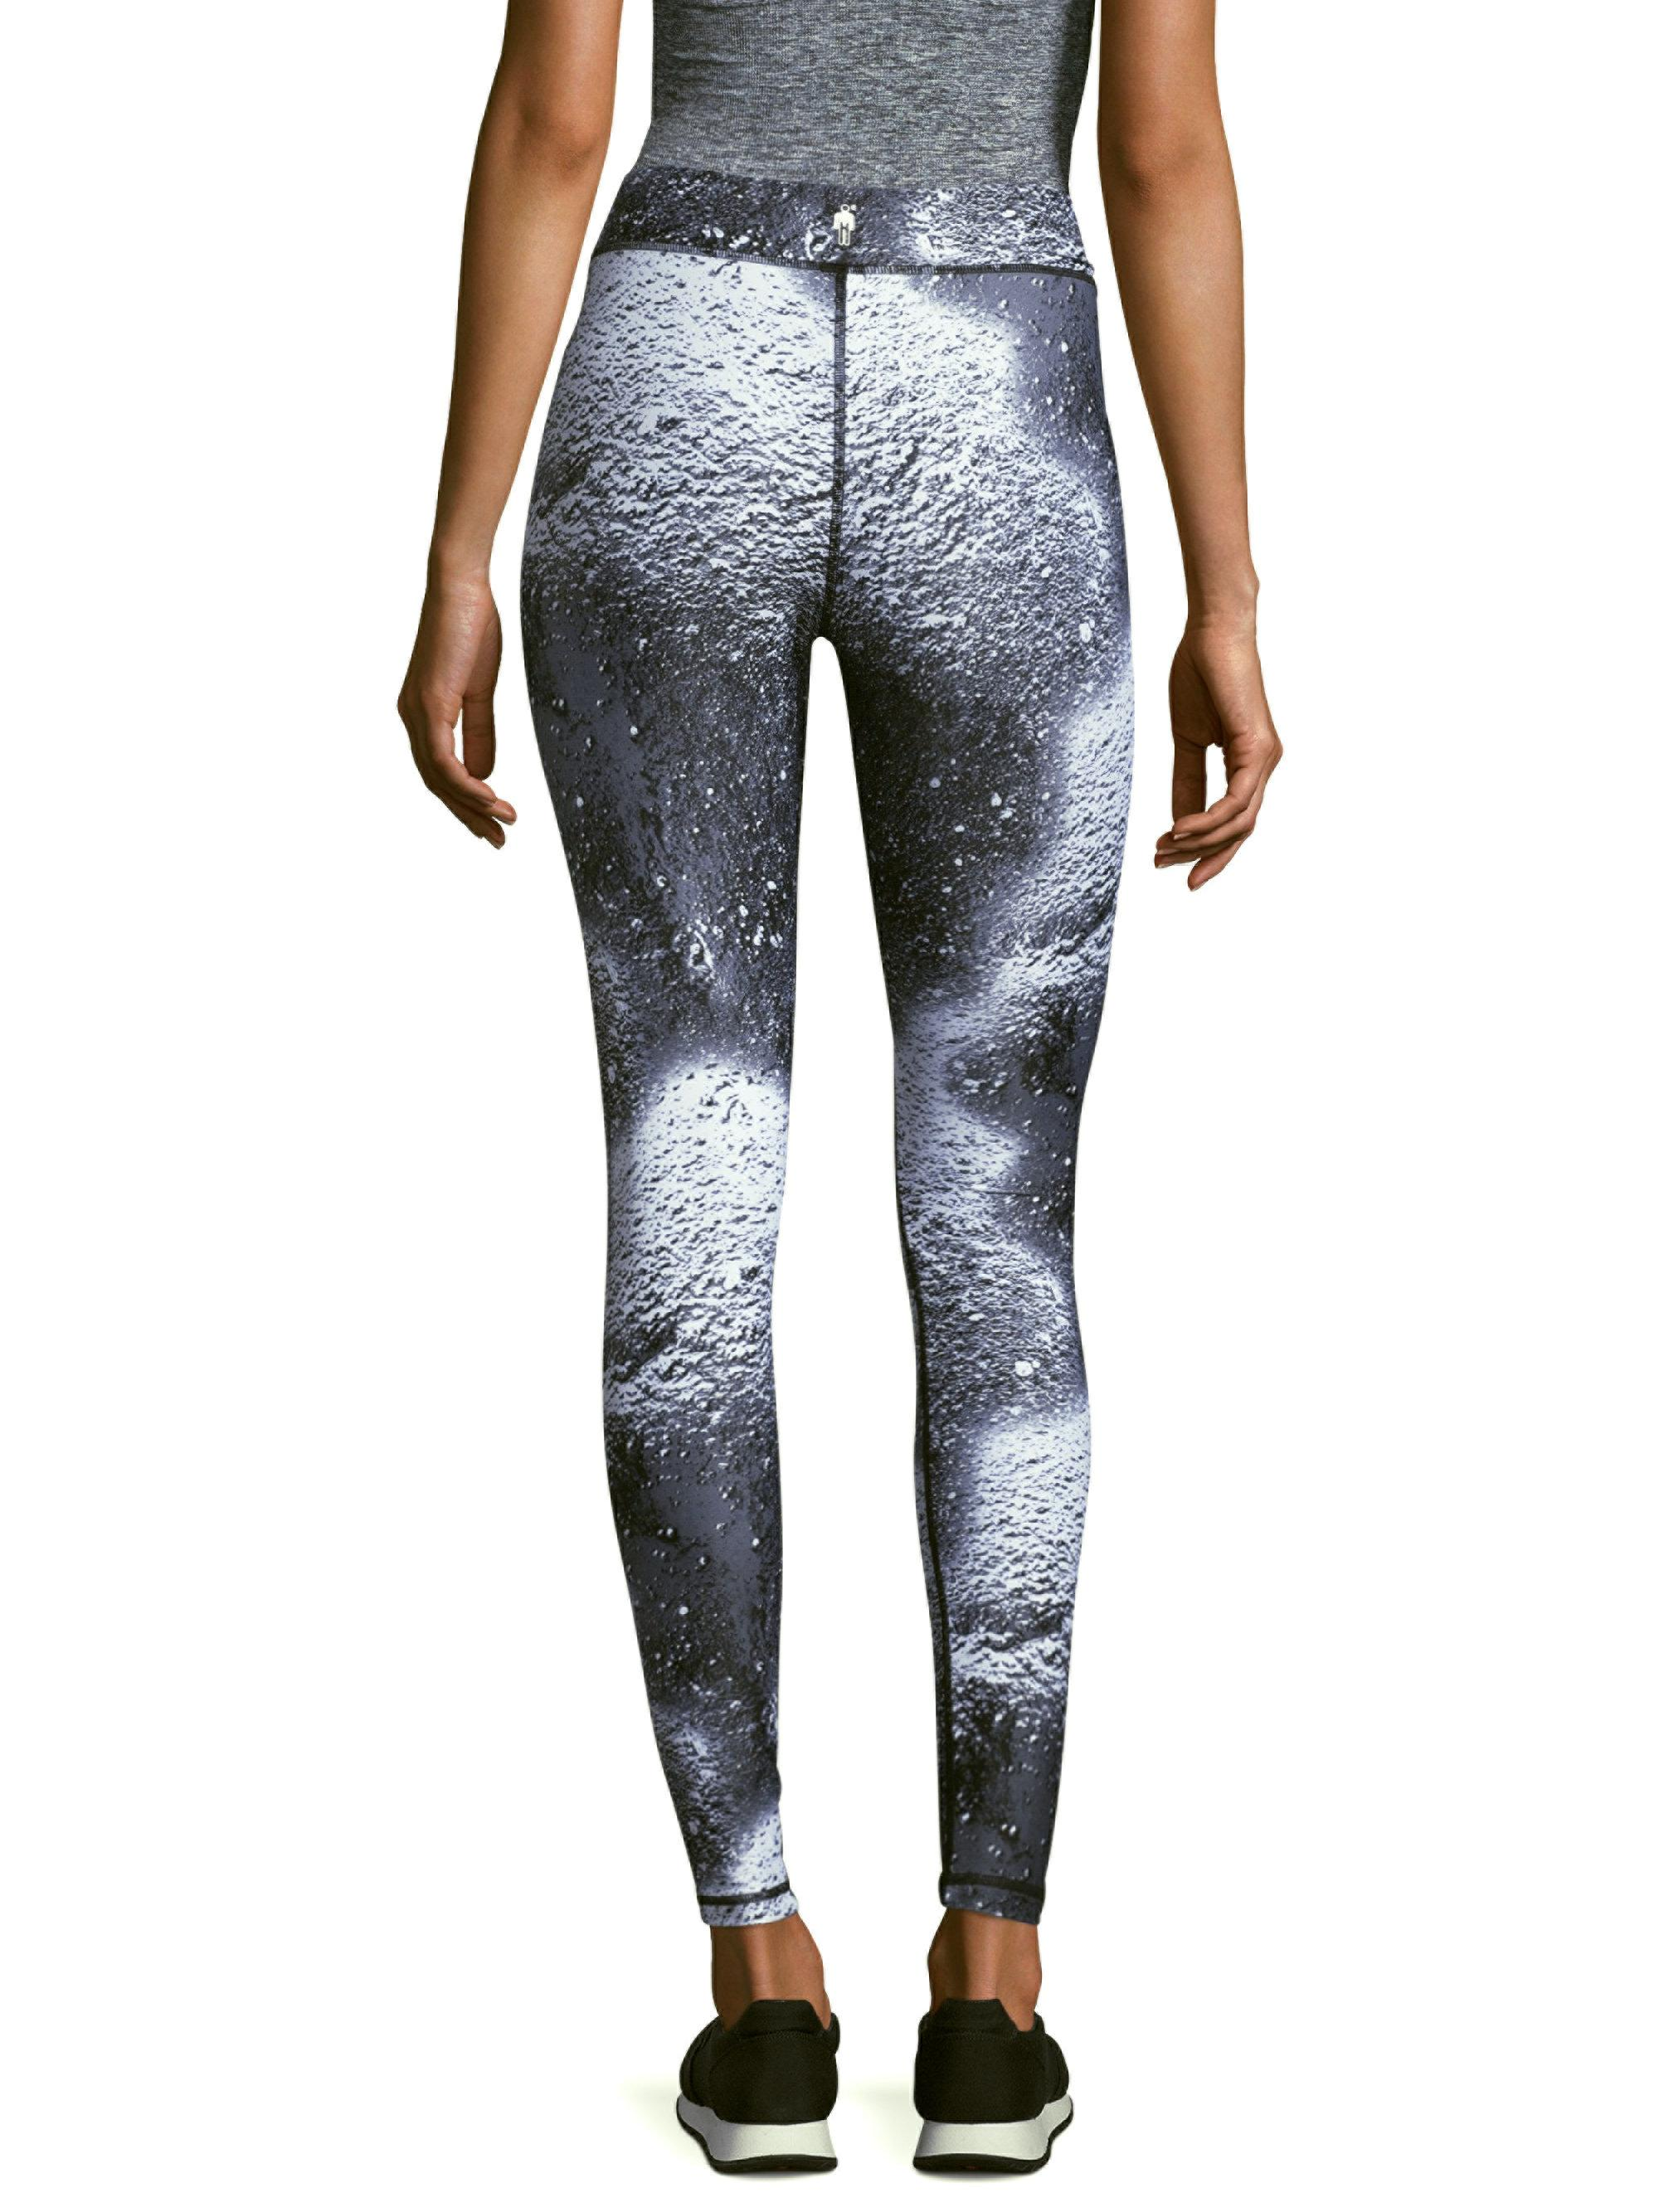 High Waist Seamless Leggings - White hpe clothing Buy Cheap Prices Find Great Sale Online Clearance Deals Largest Supplier Sale Online Cheap Sale Visa Payment 7YfCmdb3